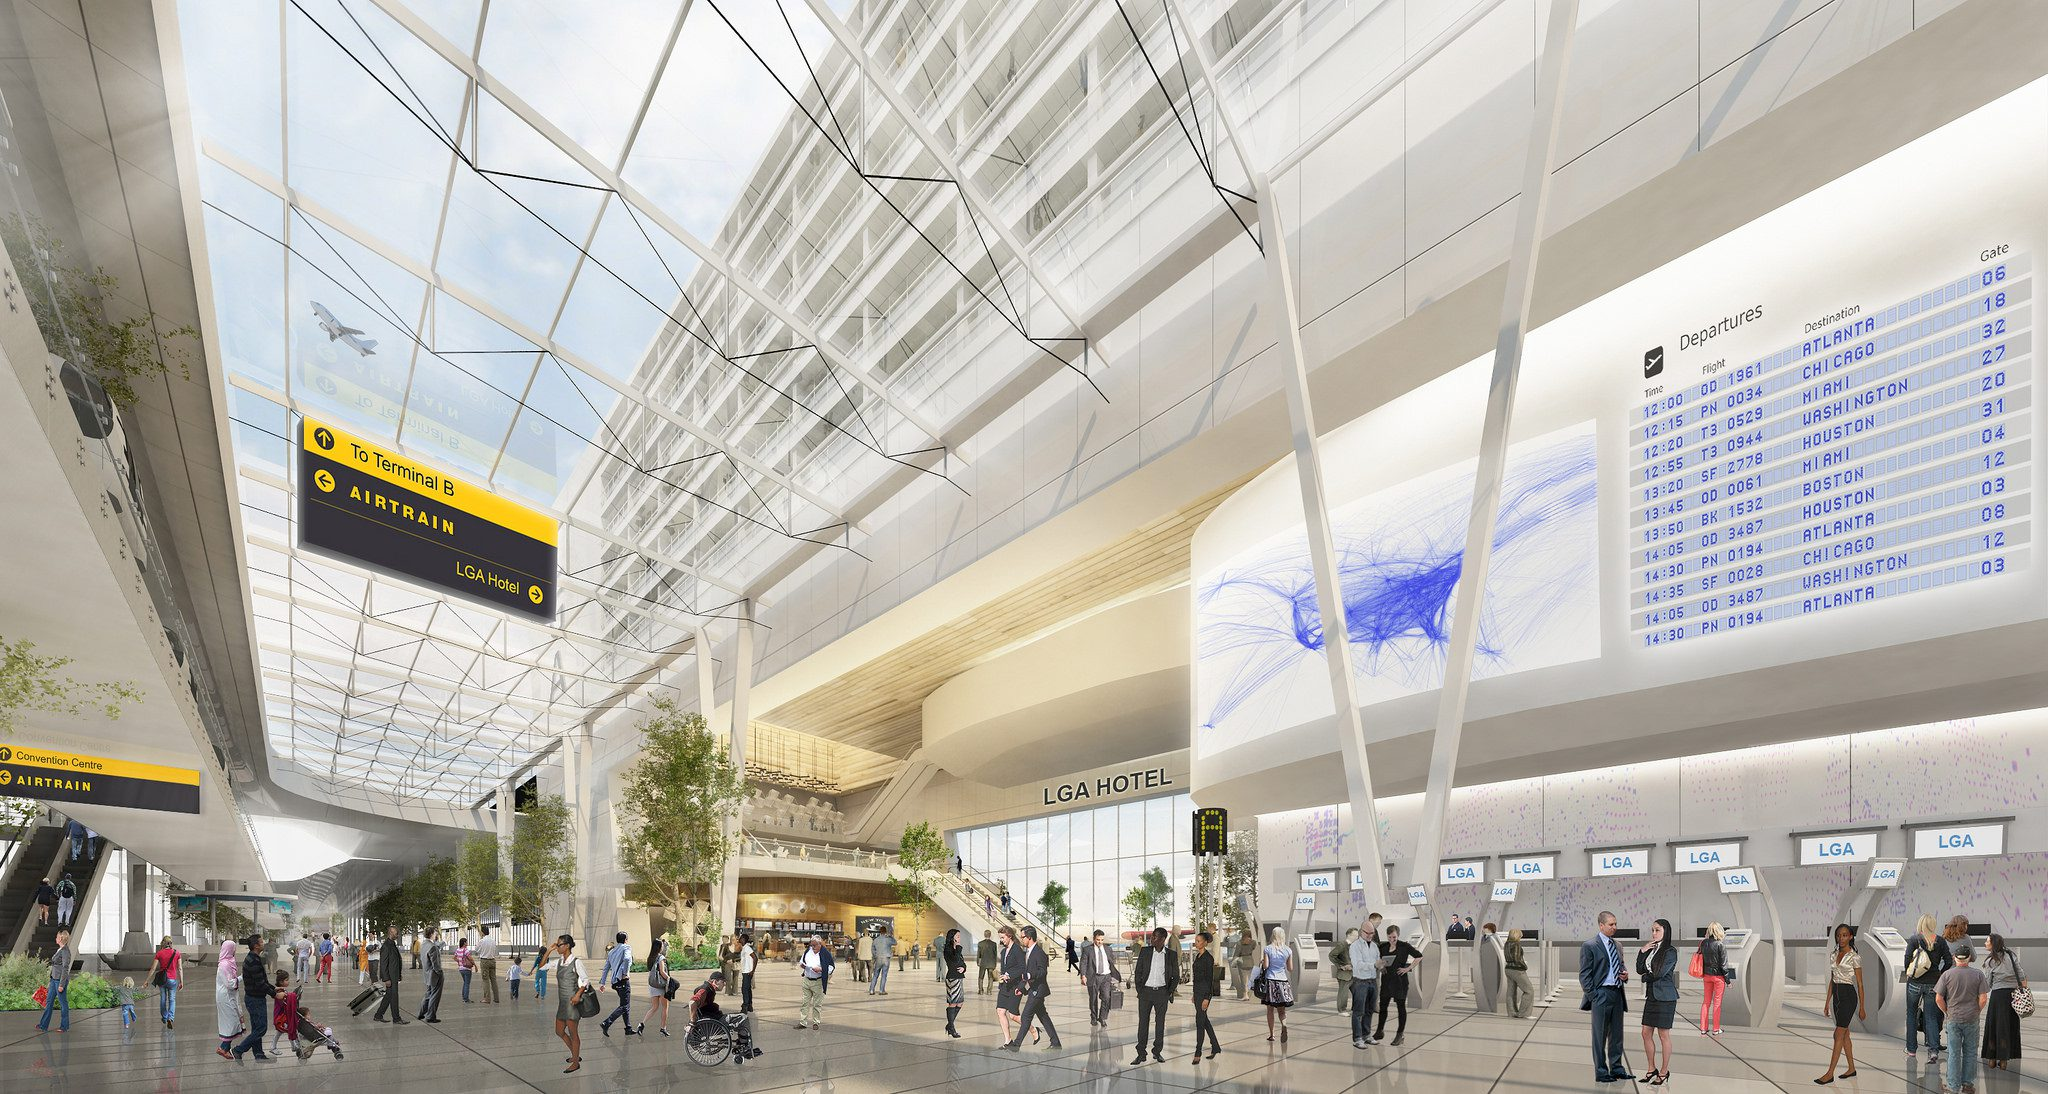 Major Modernization Projects for LaGuardia and Newark Airports